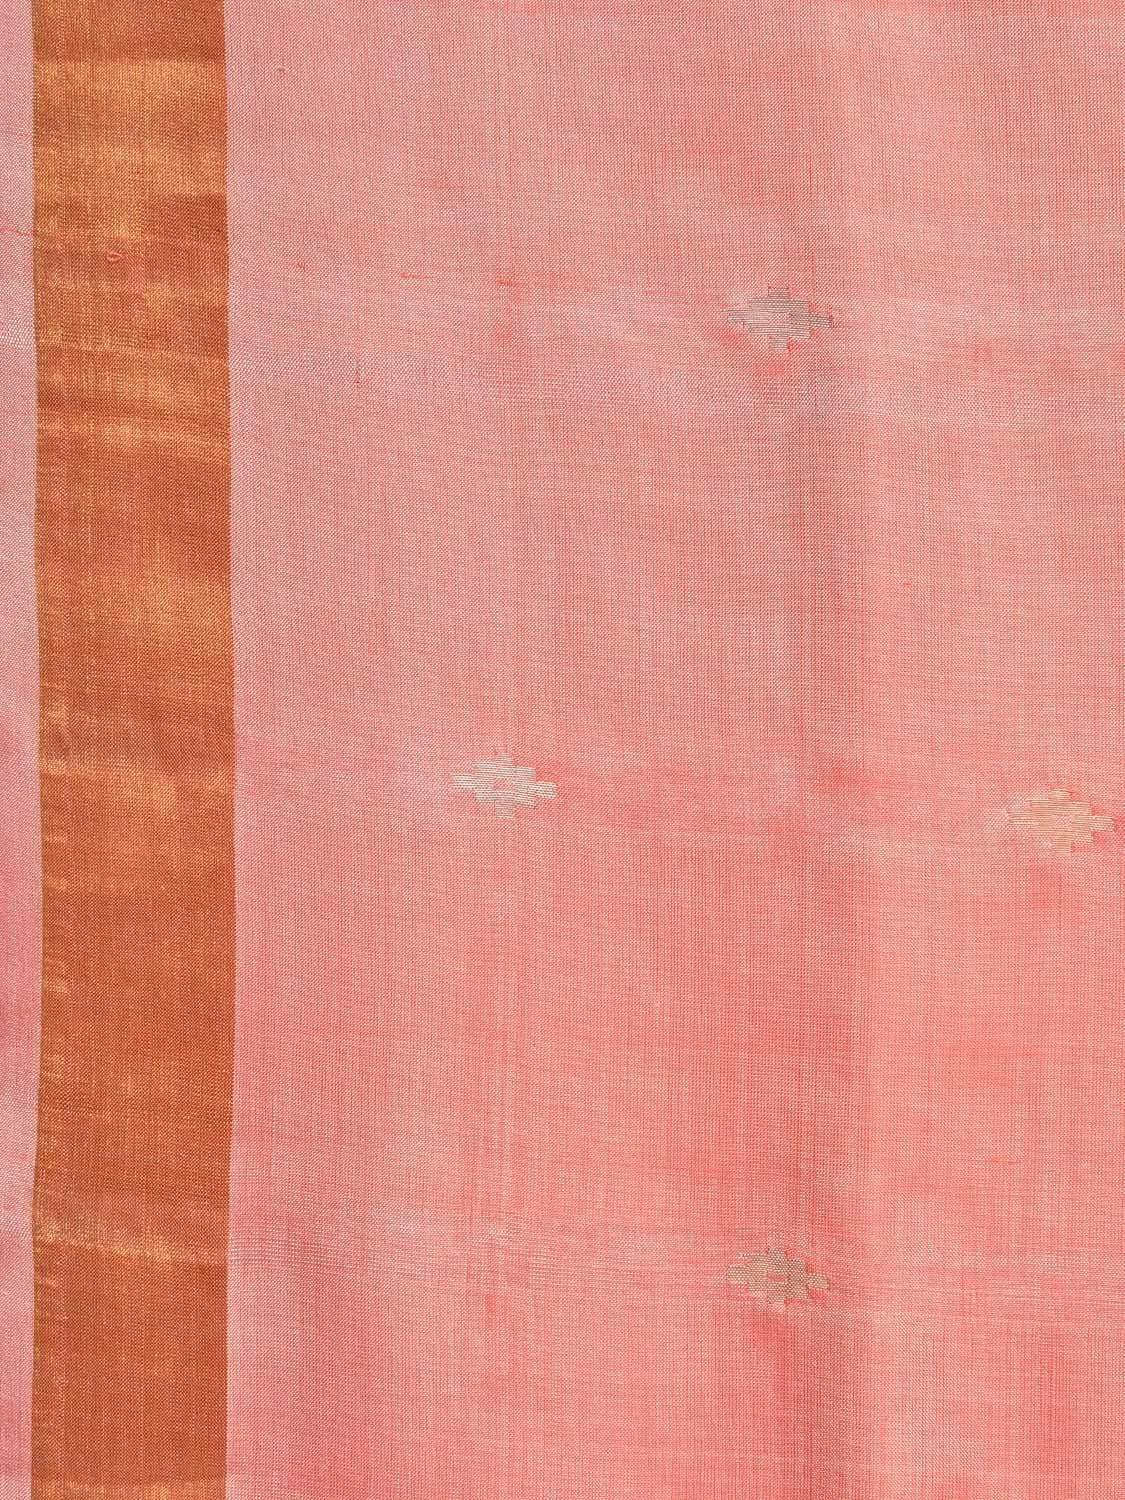 Baby Pink Uppada Silk Handloom Saree with Jamdani Pallu Design u1585